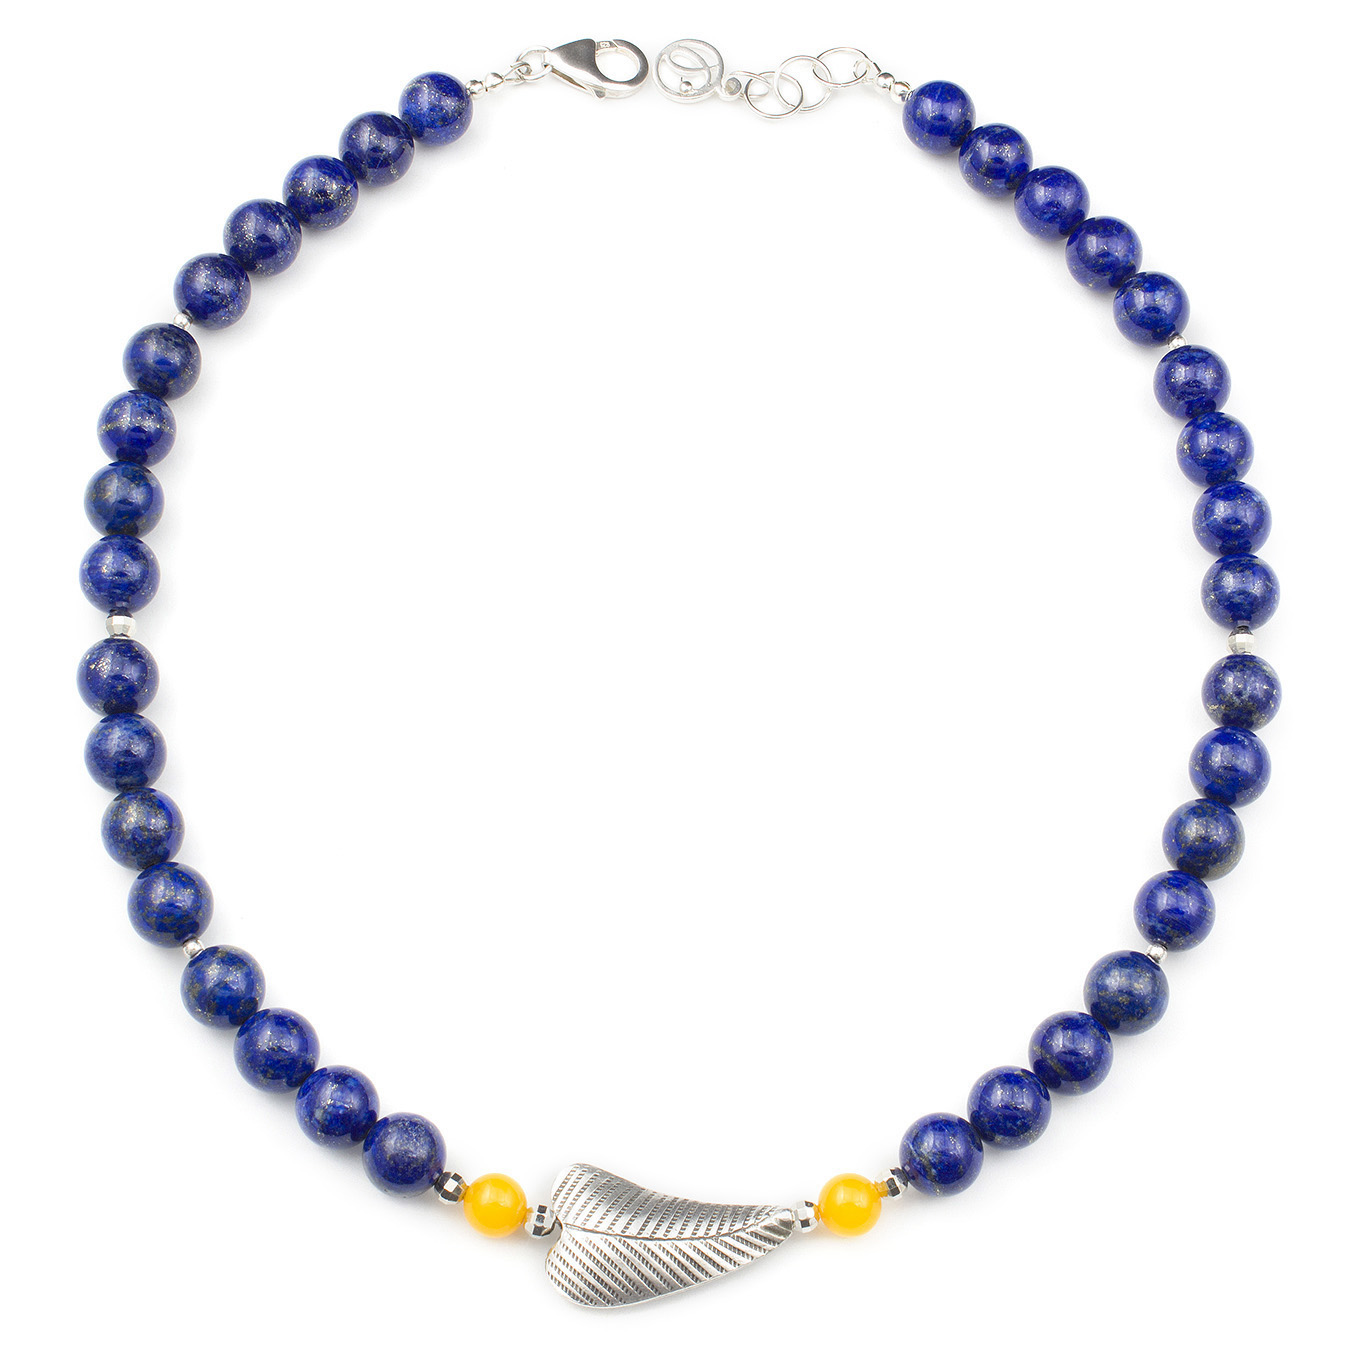 Customizable necklace with thai silver, lapis, amber and rose quartz